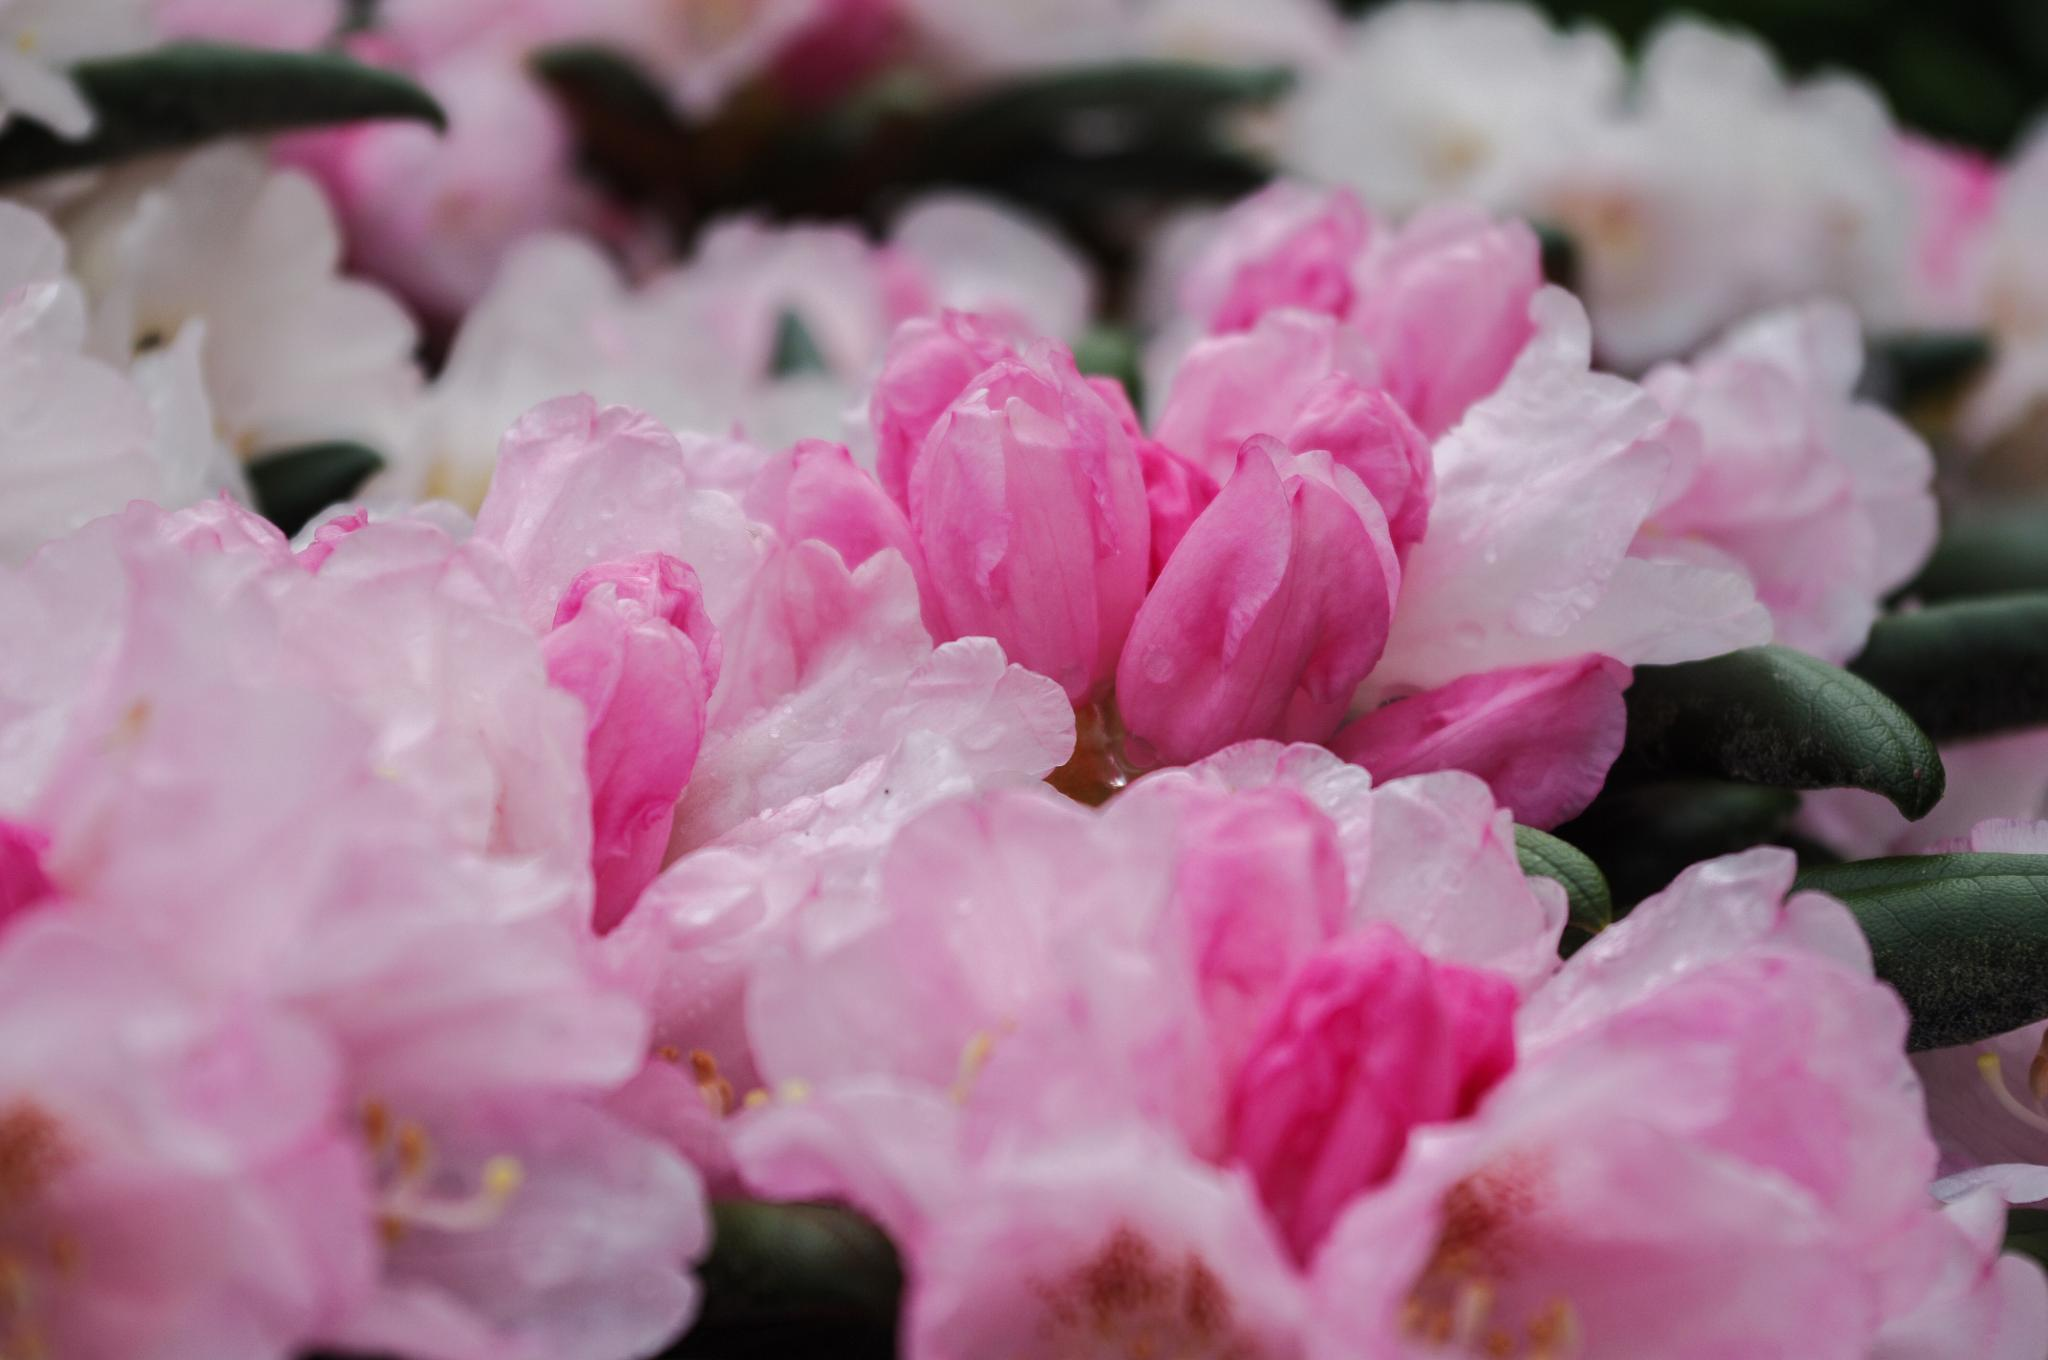 Rhododendrons after the rain by Mark Smith